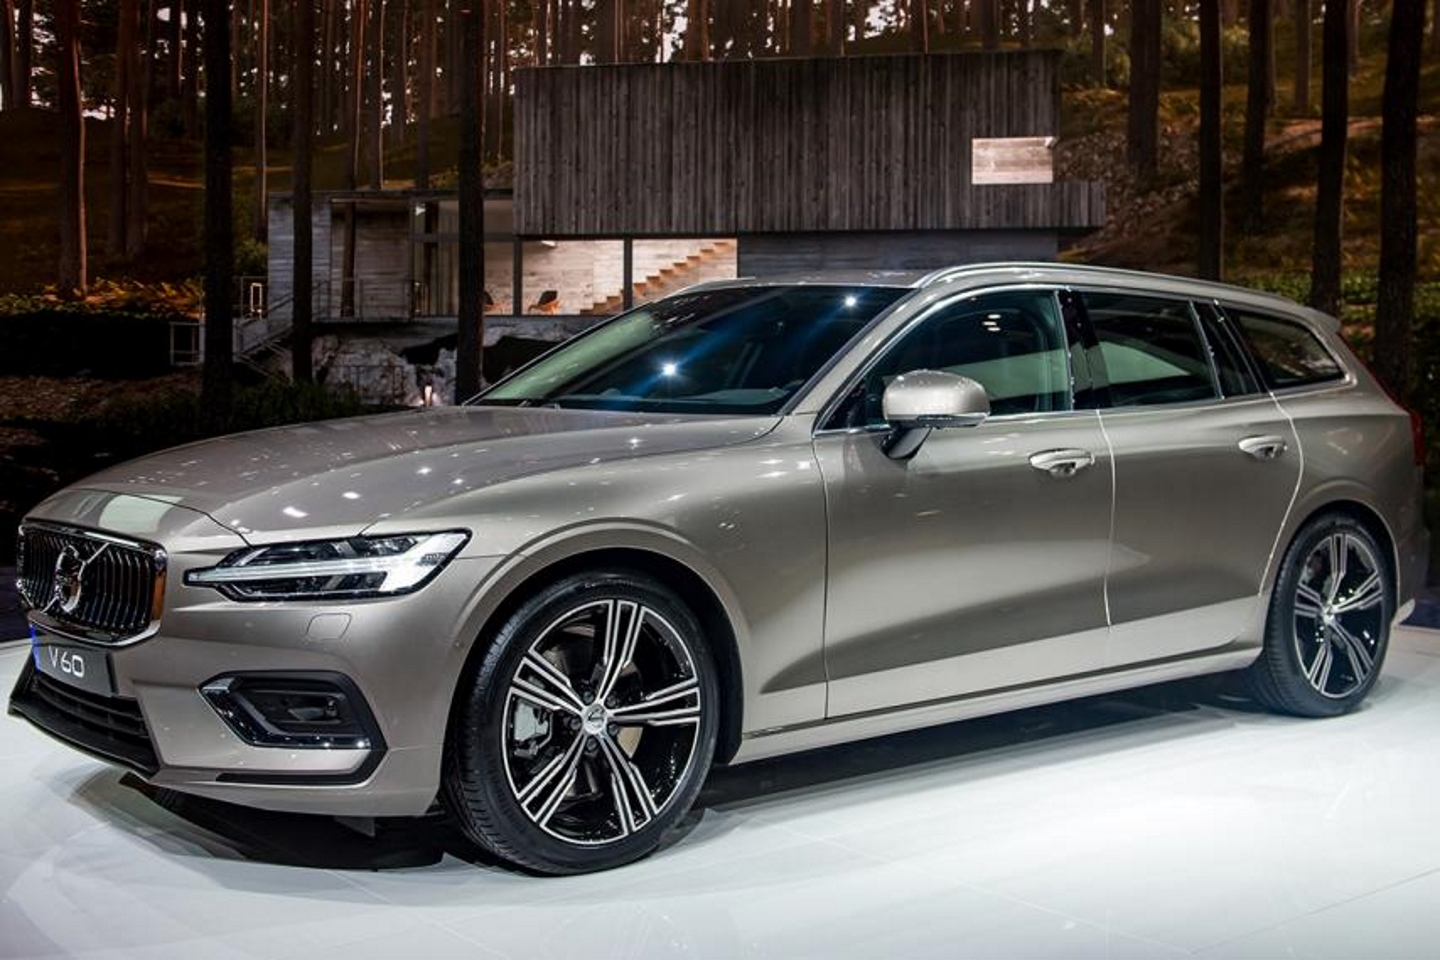 Volvo V 60. Фото: Robert Hradil/Getty Images